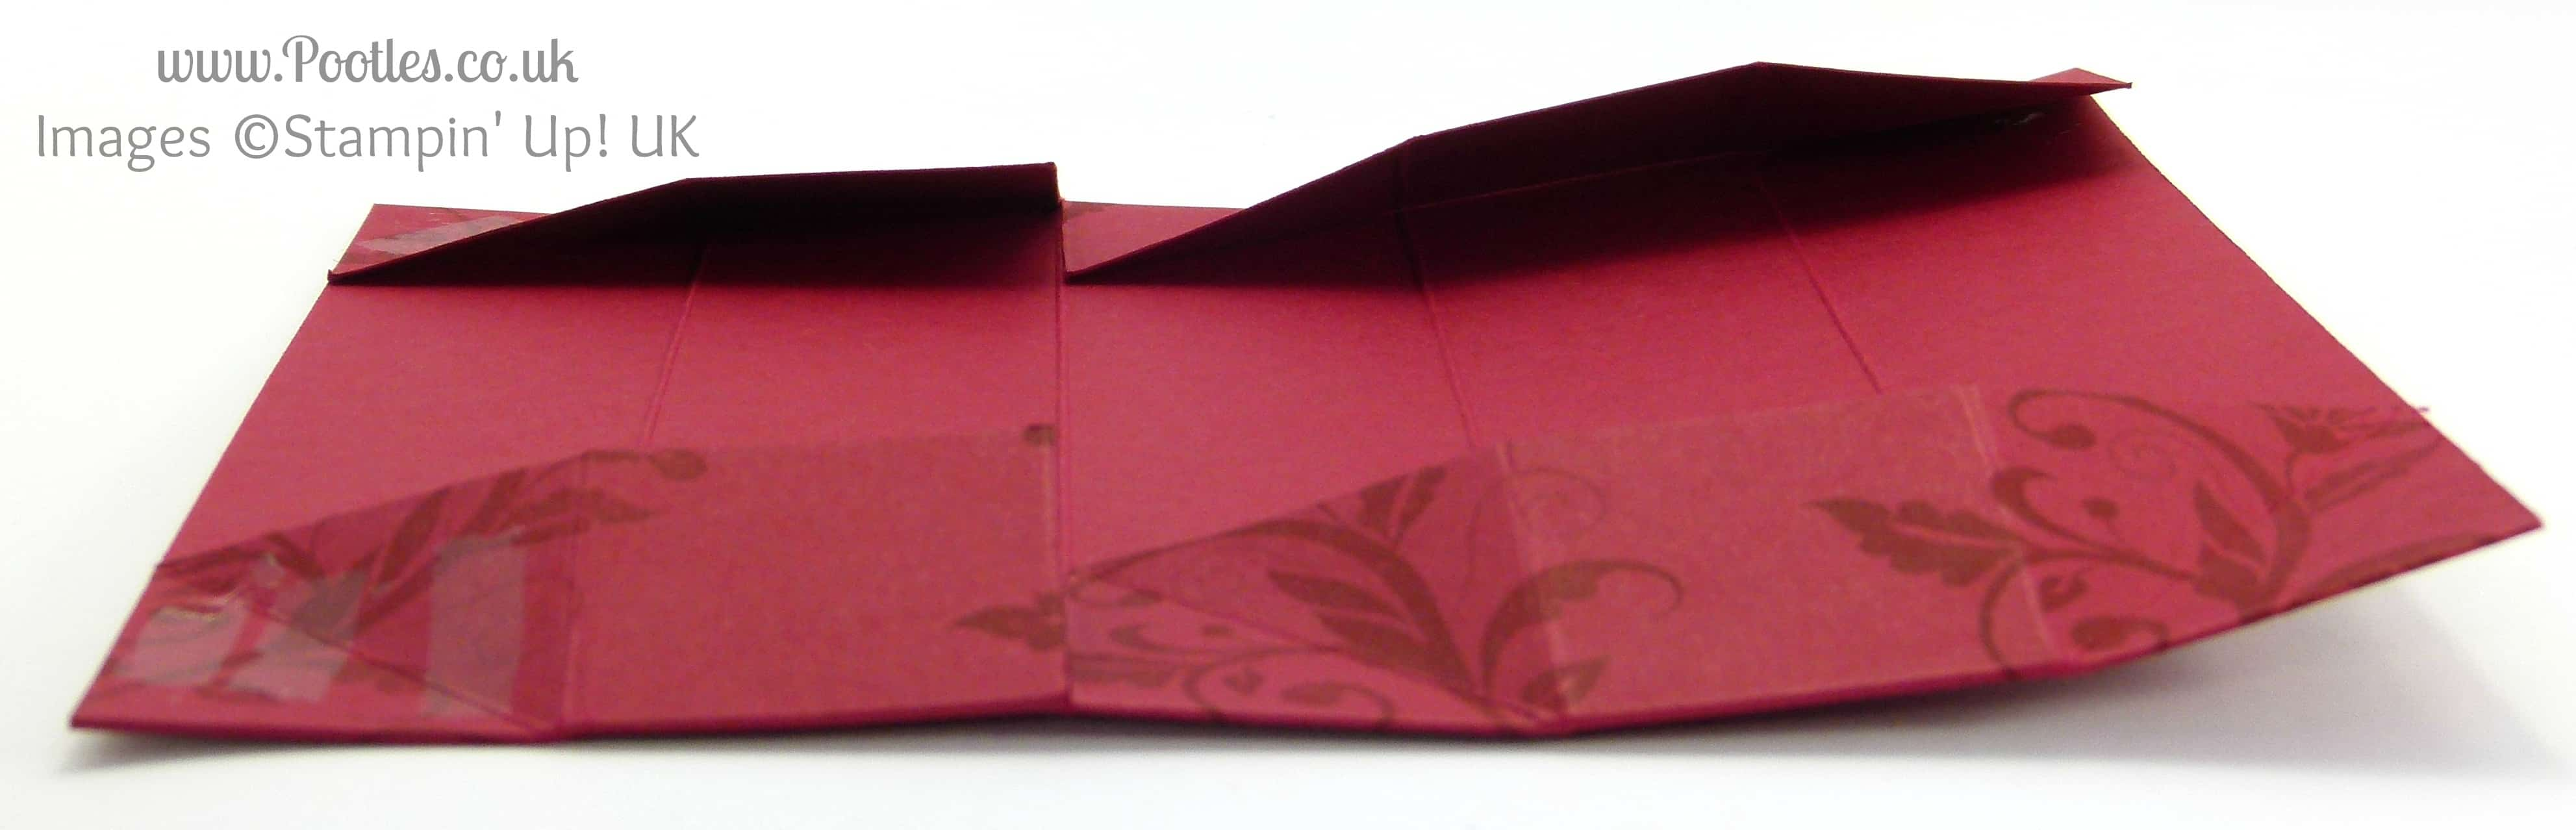 Stampin' Up! UK Demonstrator Pootles - Long Slender Fold Flat Box Tutorial Flattened